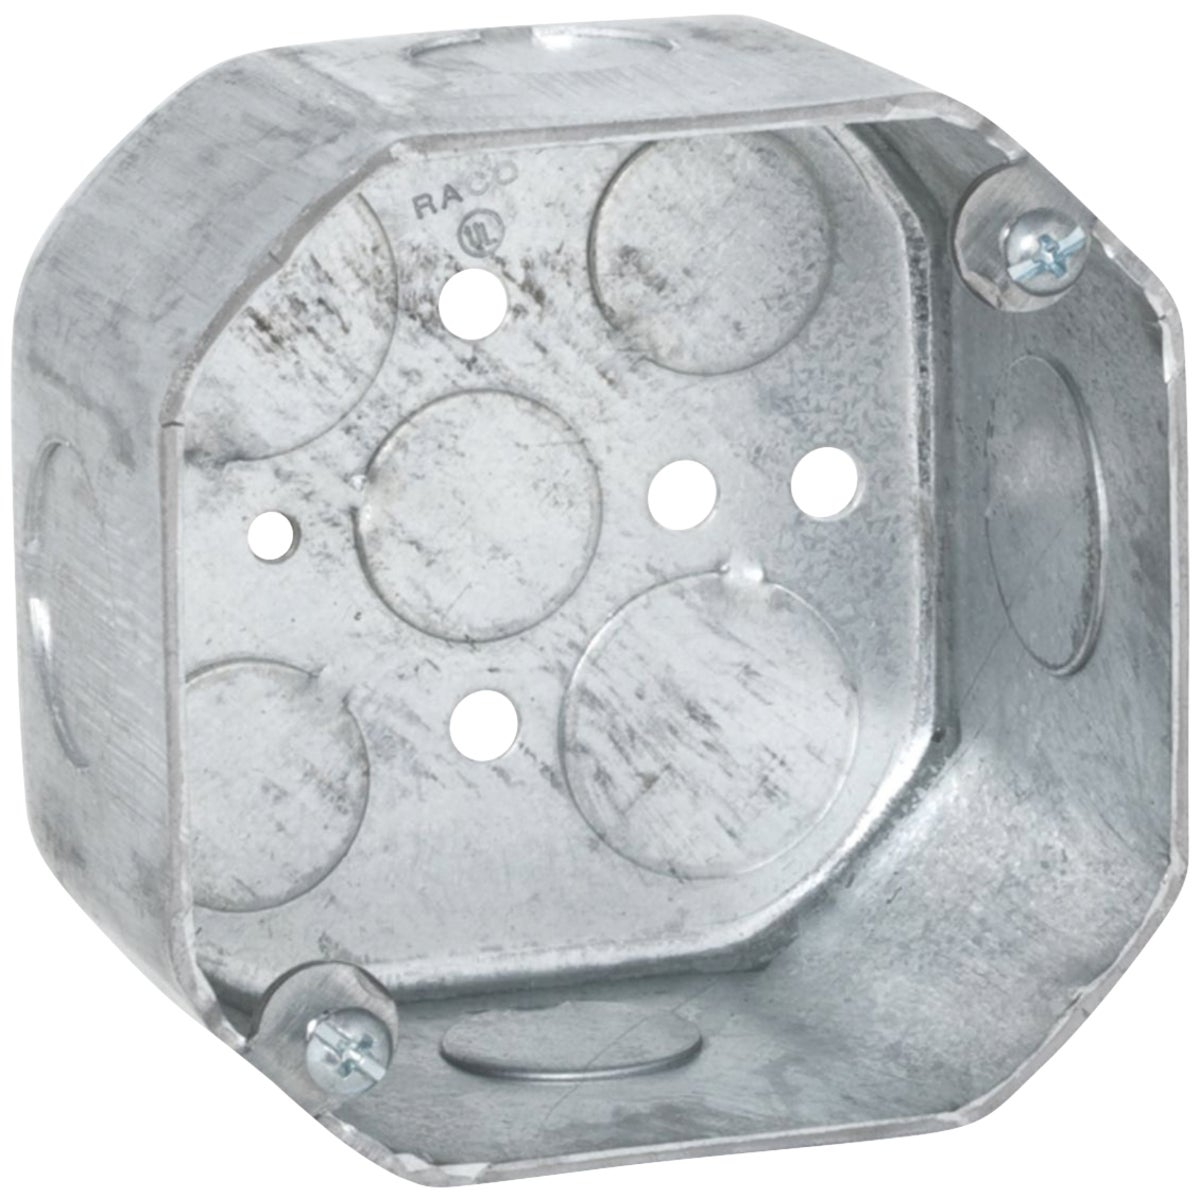 4X4X2-1/8 OCTAGON BOX - 541711/23/4 by Thomas & Betts